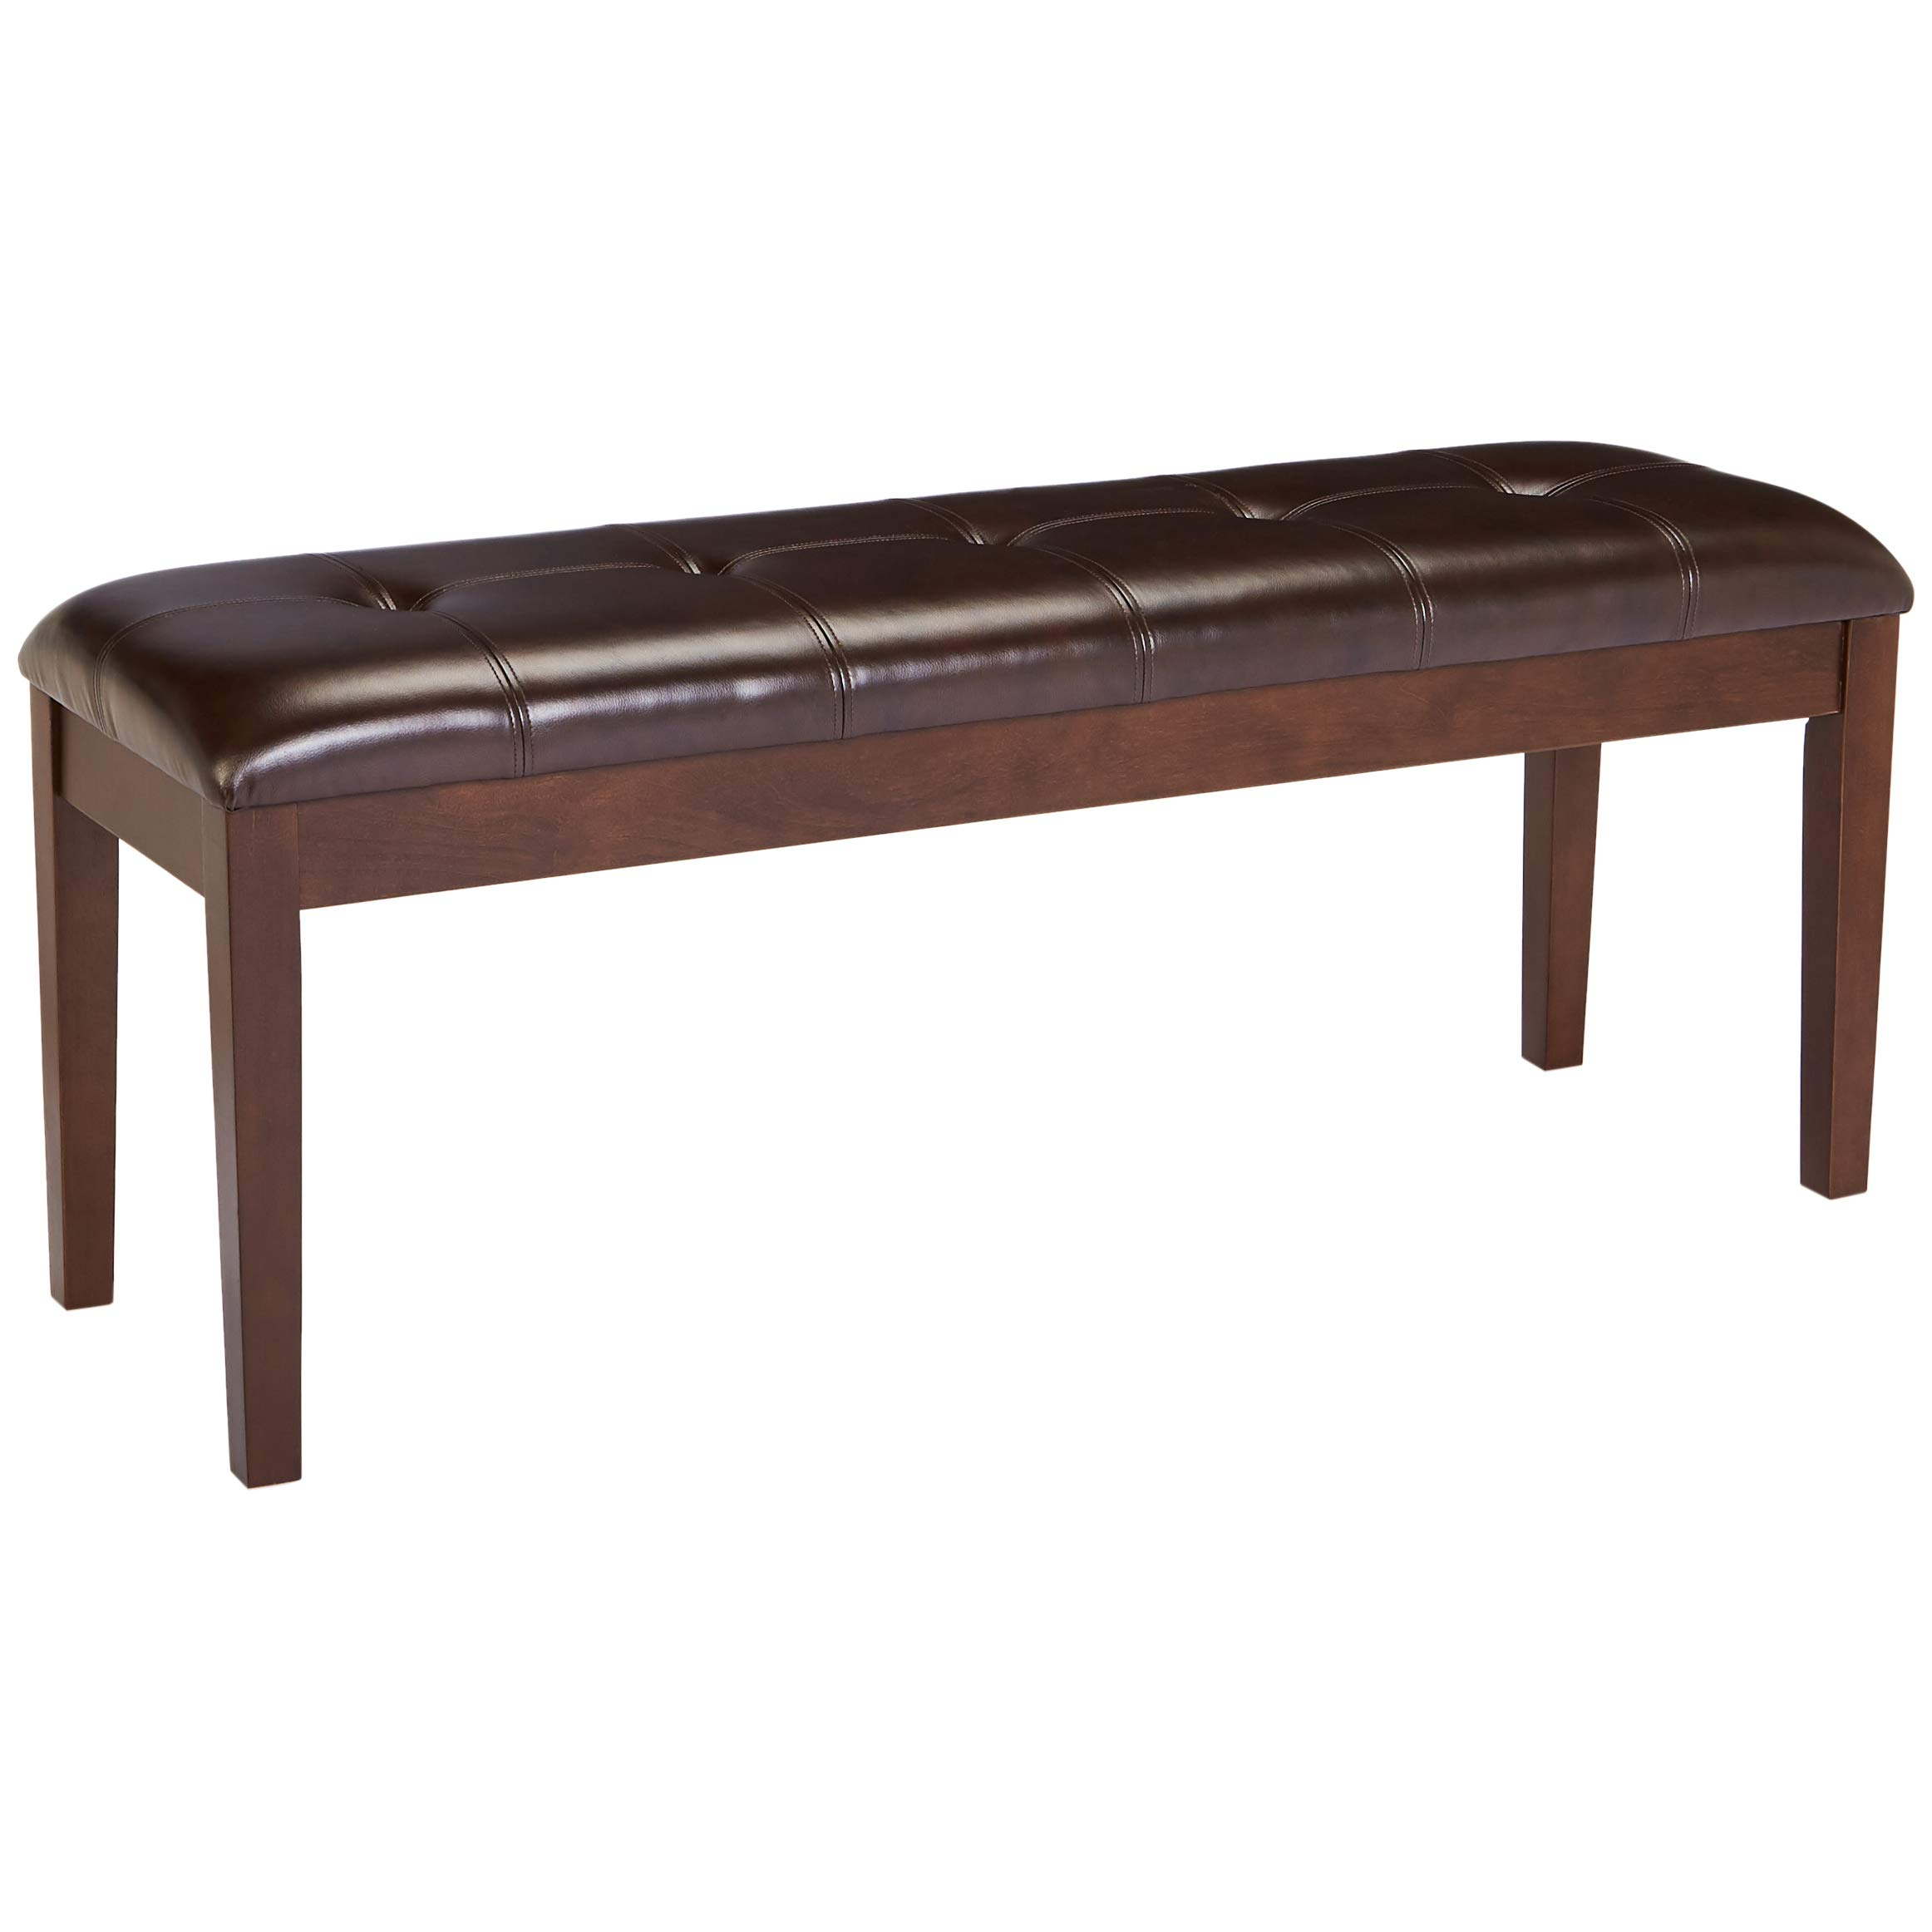 Red Hook Barcelona Wooden Bench with Faux-Leather Upholstered Cushion - Bittersweet Brown by Red Hook